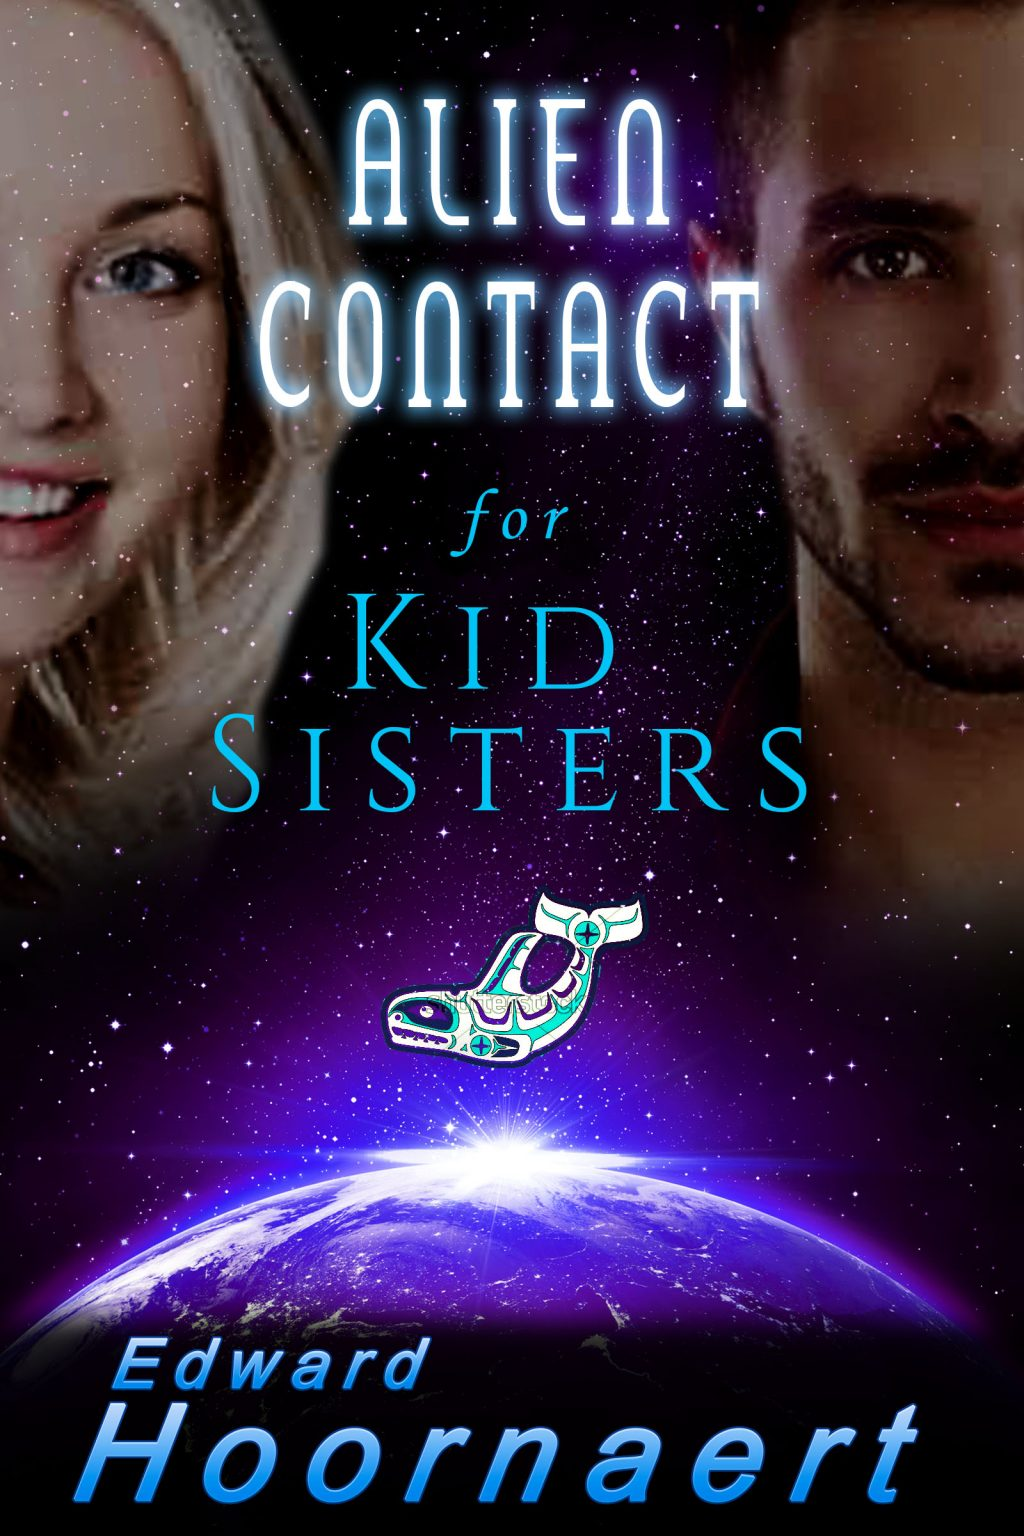 Alien Contact for Kid Sisters (Alien Contact for Idiots # 2) by Edward Hoornaert